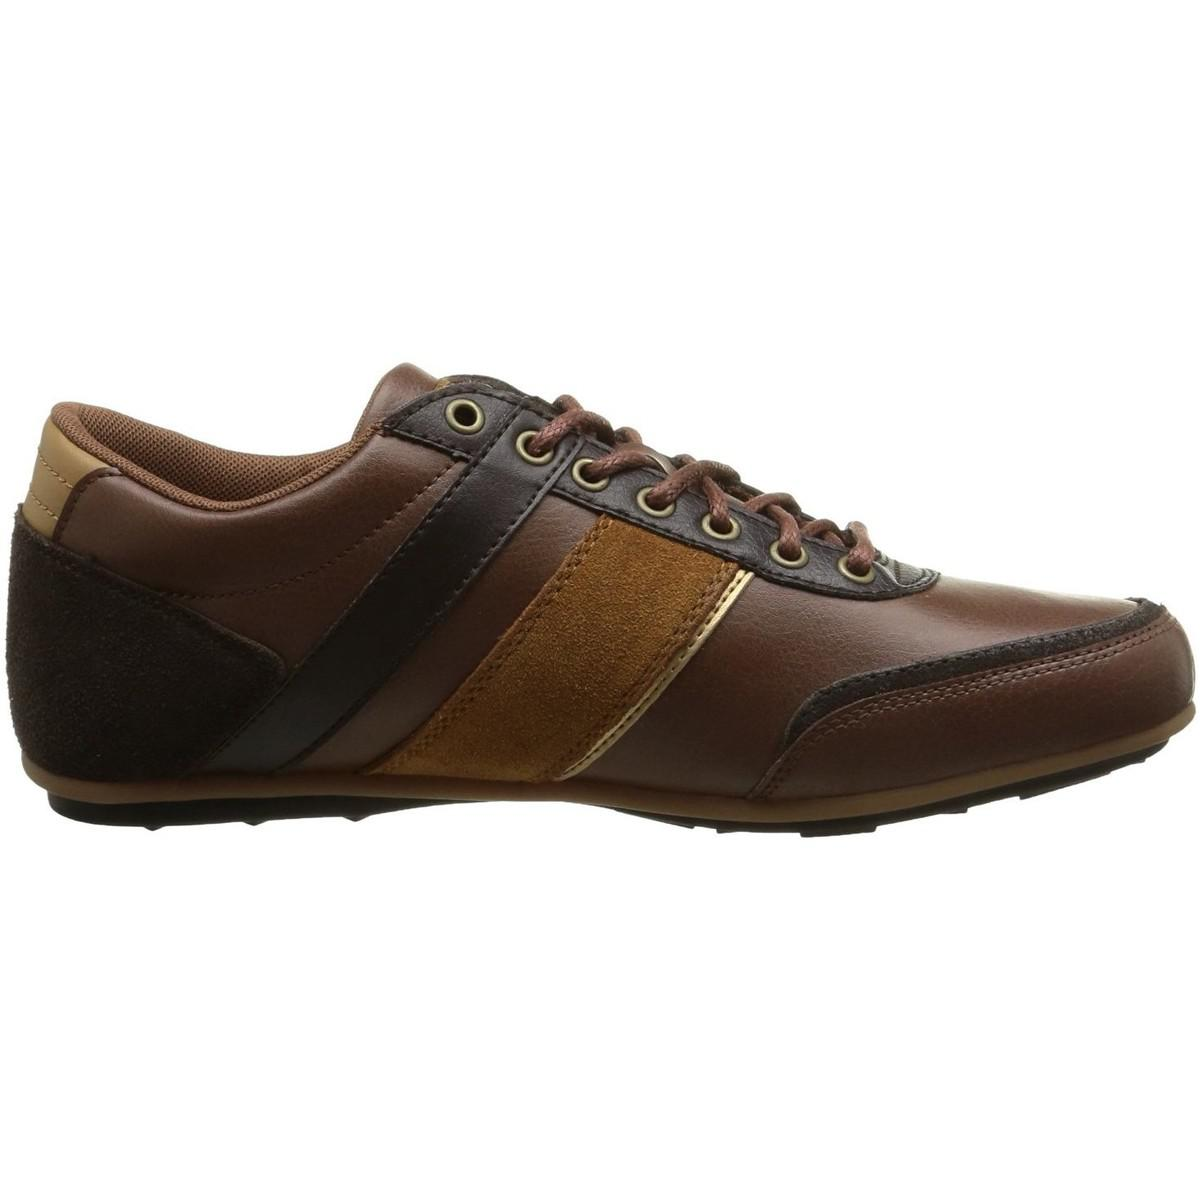 db08a5364fe9 Le Coq Sportif Andelot Syn Lea Men s Shoes (trainers) In Brown in ...